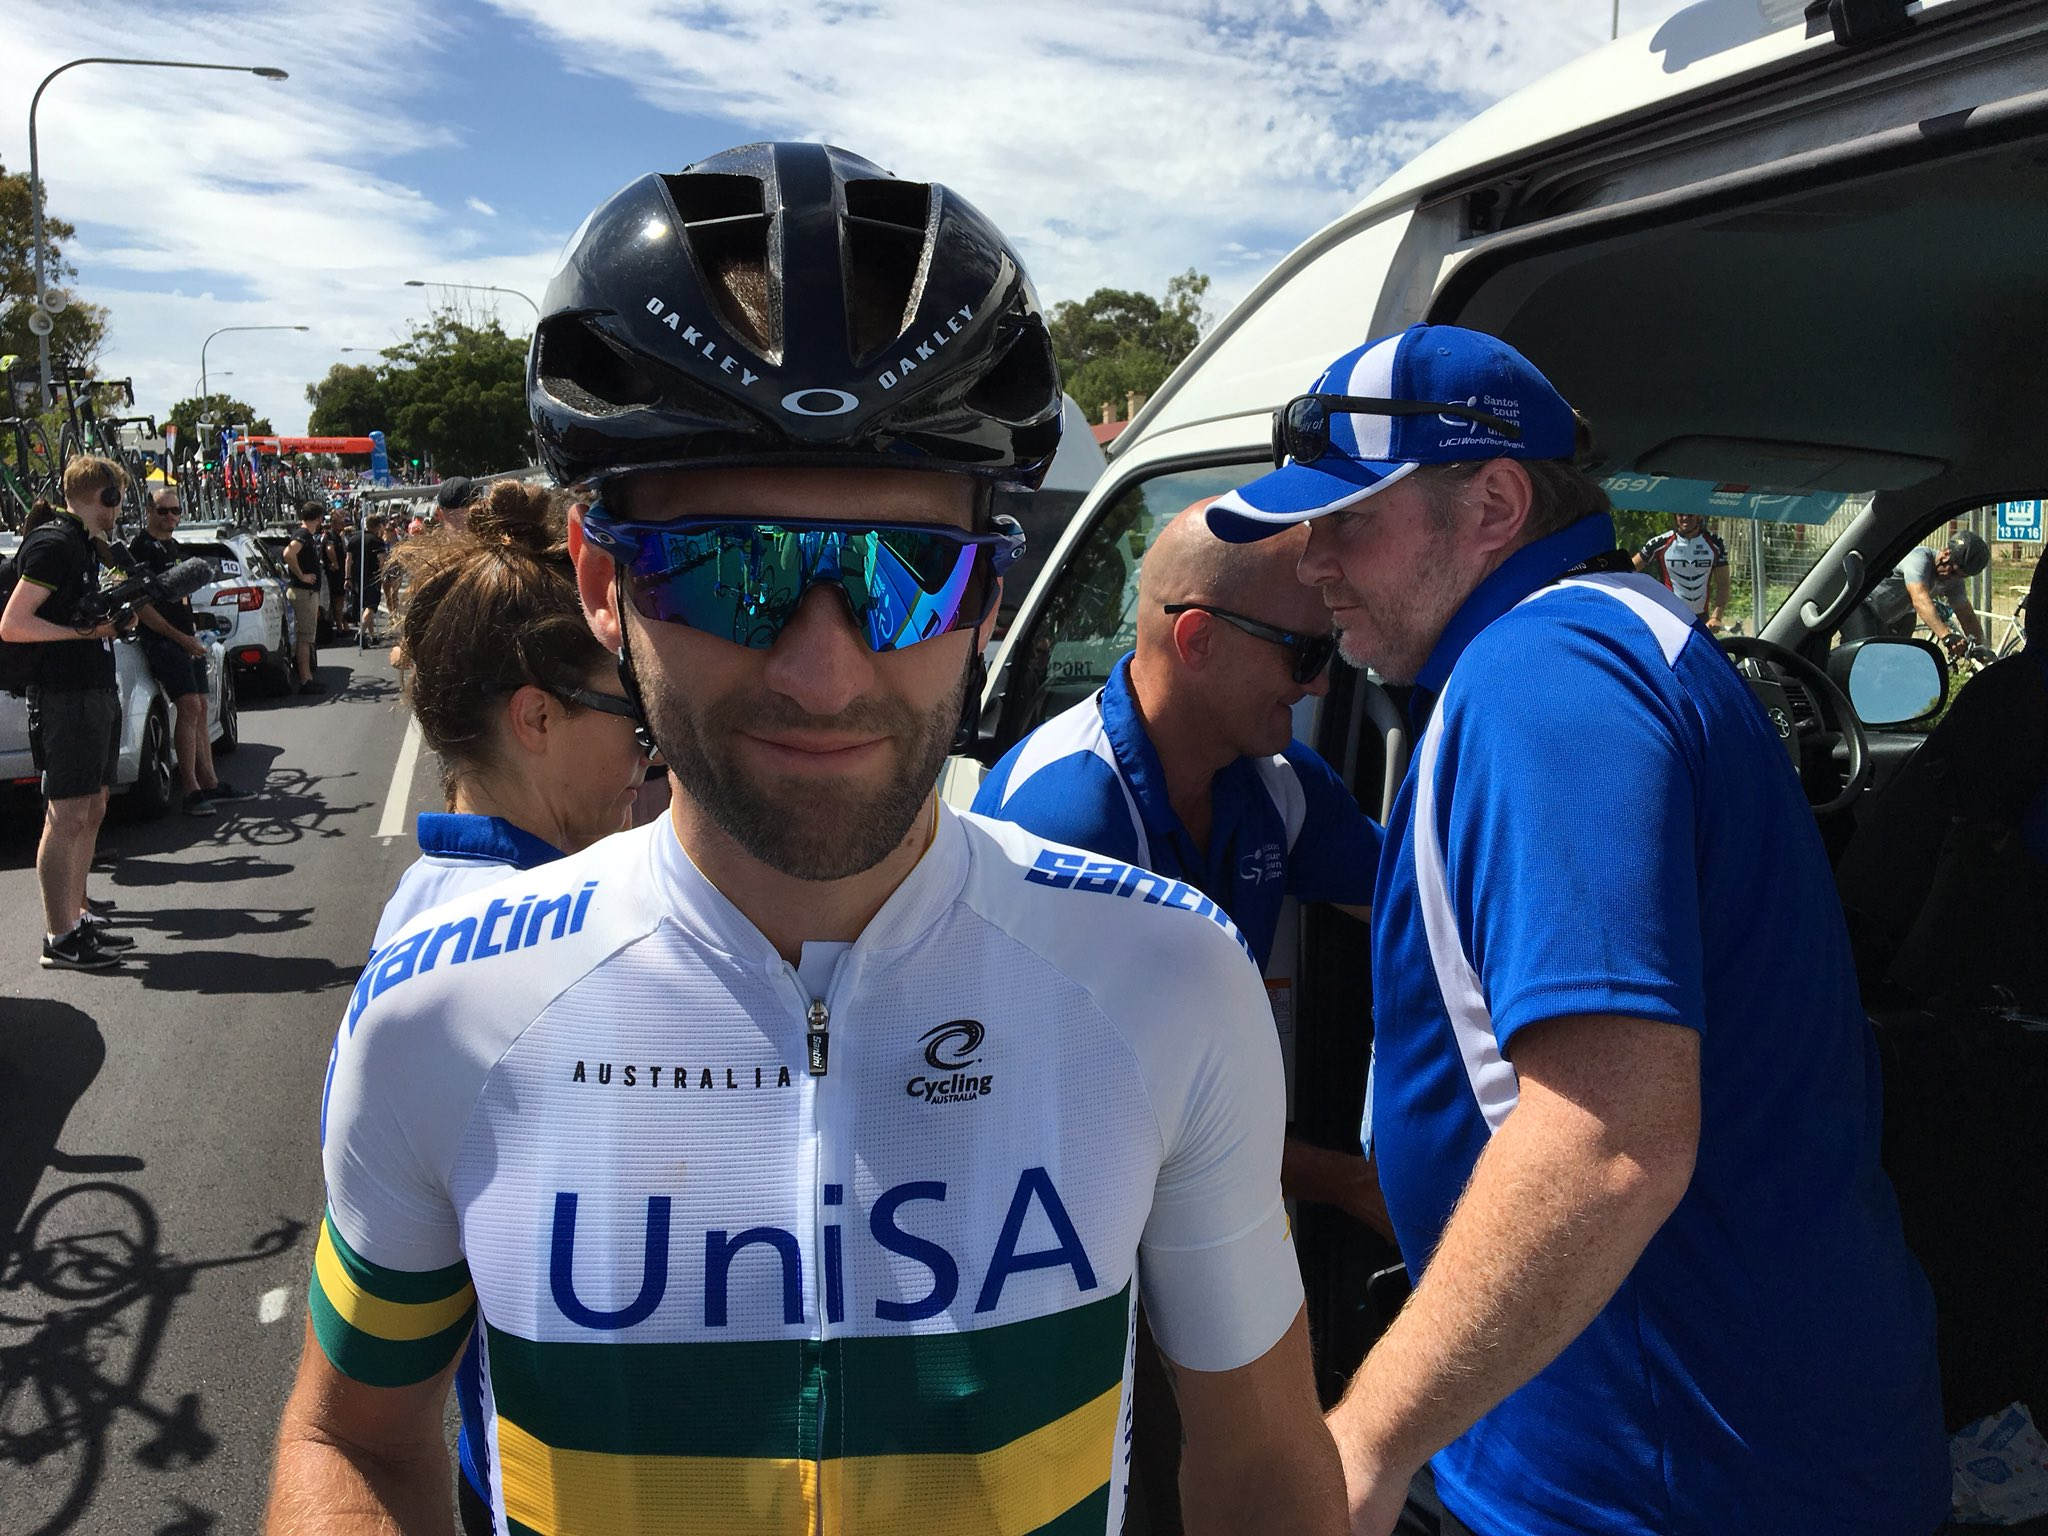 High hopes for this man @NathEarle in today's @tourdownunder at Willunga.  Team UniSA will be supporting him all the way. #TeamUniSA 👏👊🤞👍🚴 https://t.co/4IVxbSzRvl